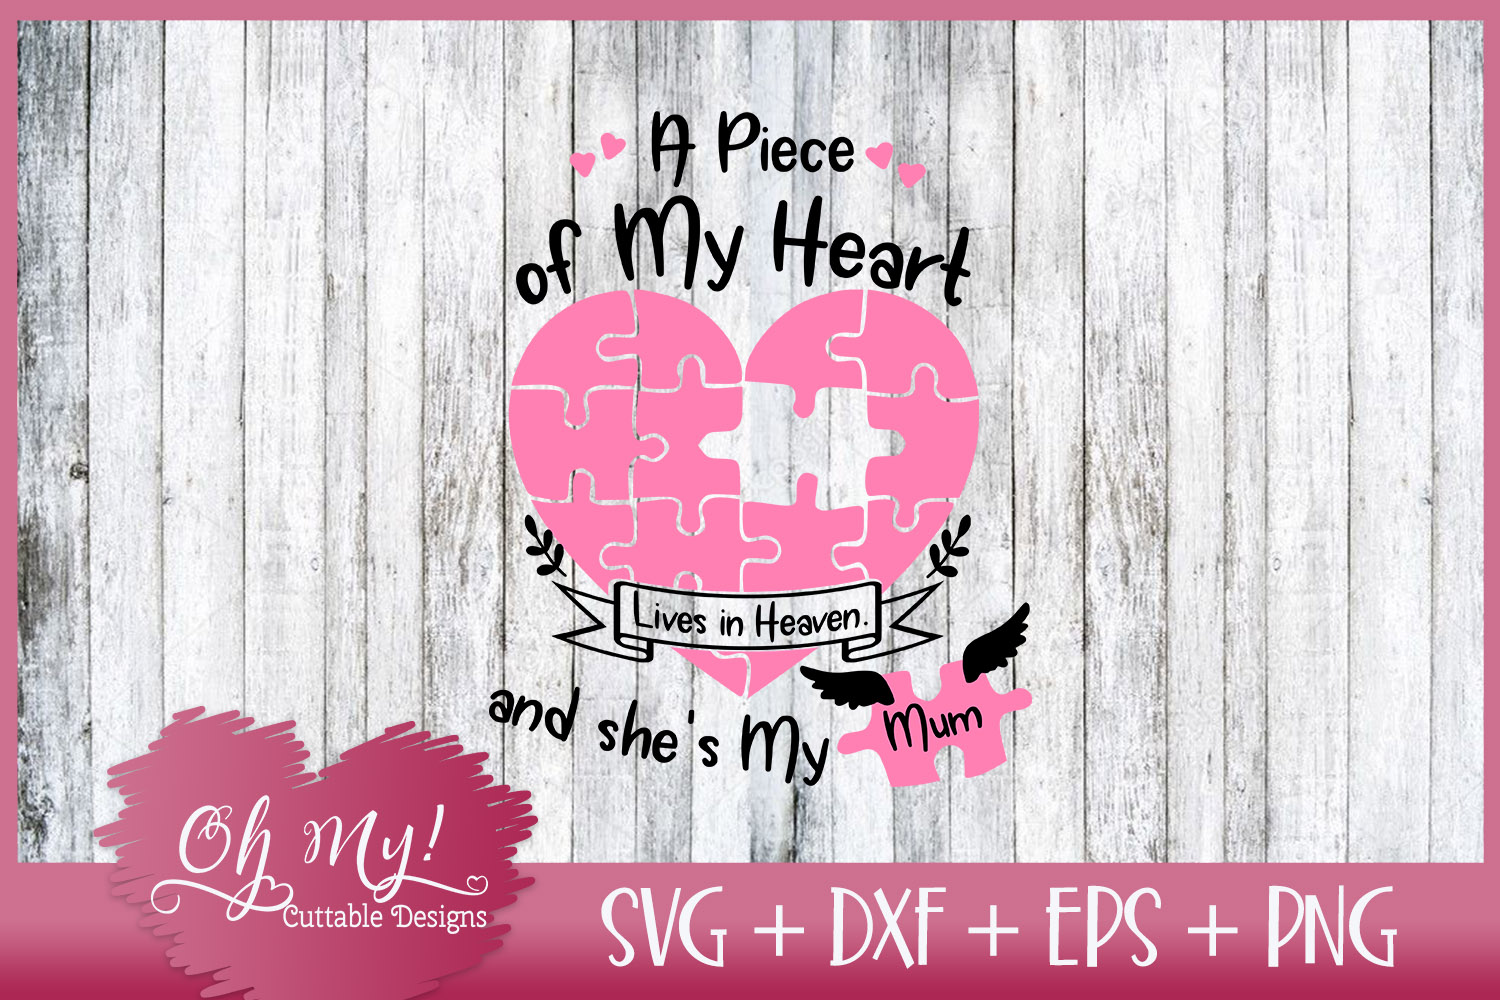 Piece of My Heart Lives In Heaven - Mum - SVG EPS DXF PNG example image 4